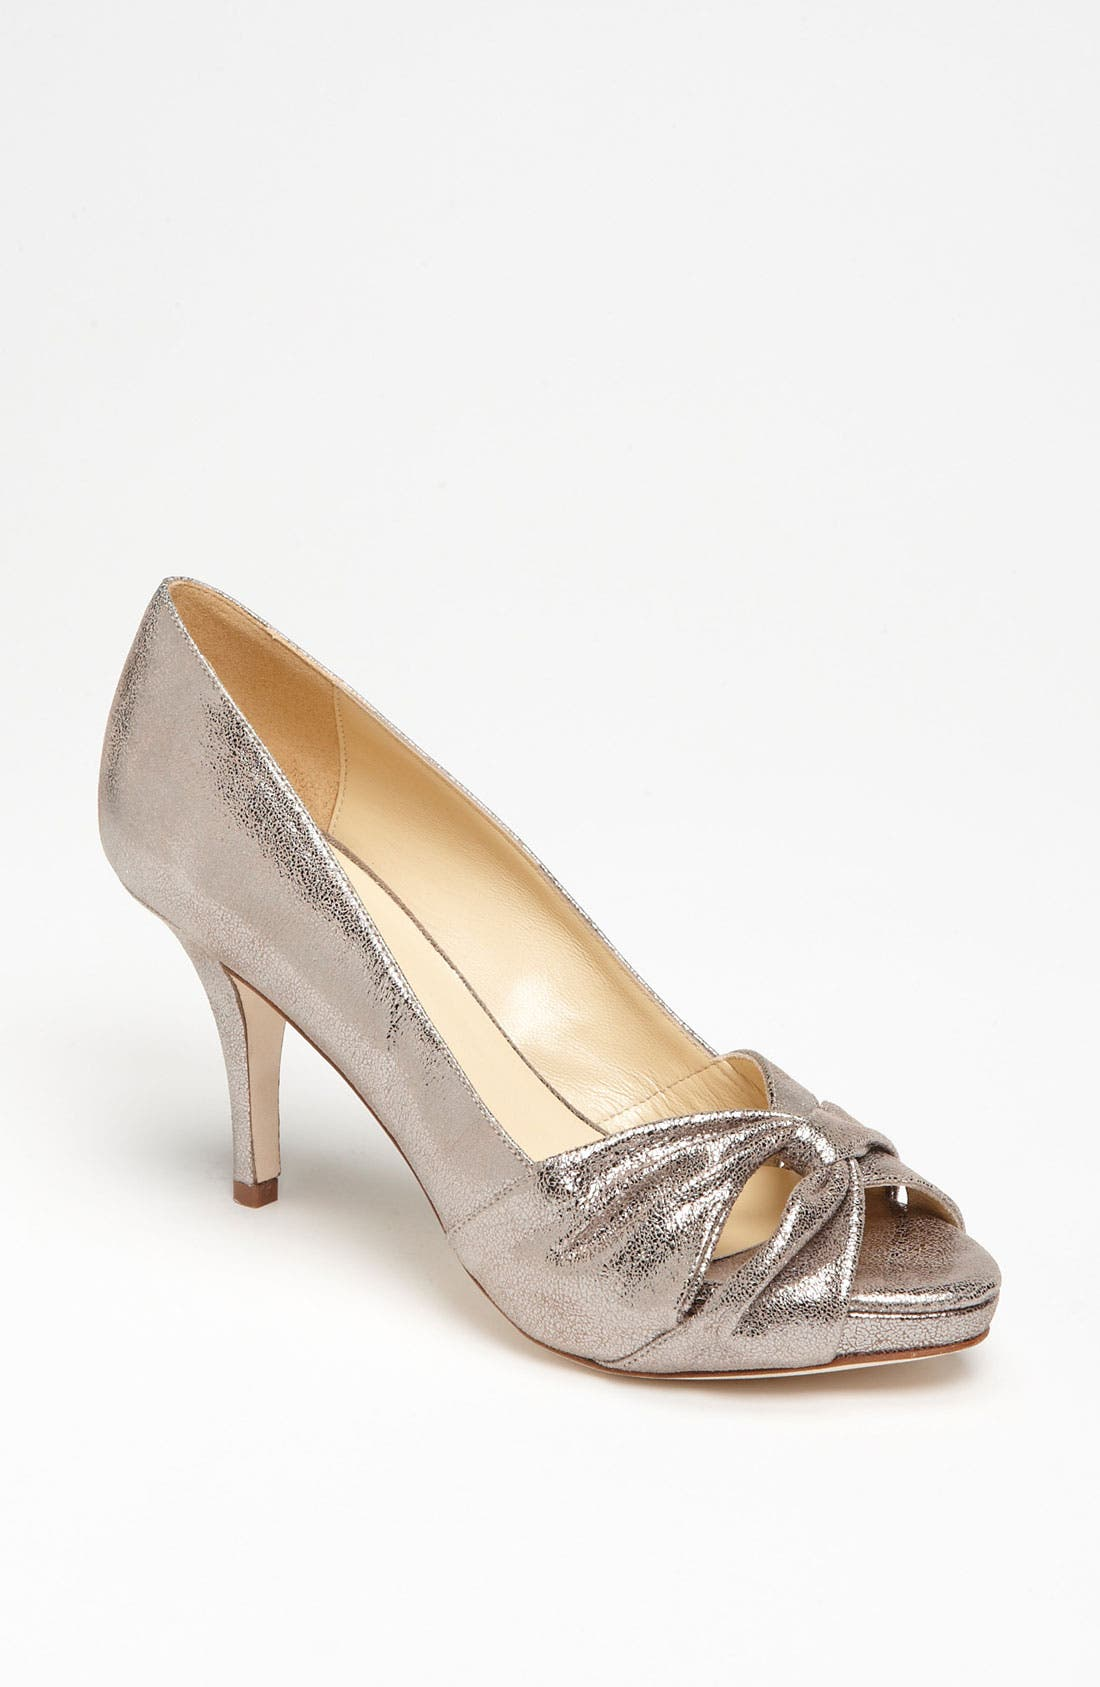 Main Image - kate spade new york 'bridget' pump